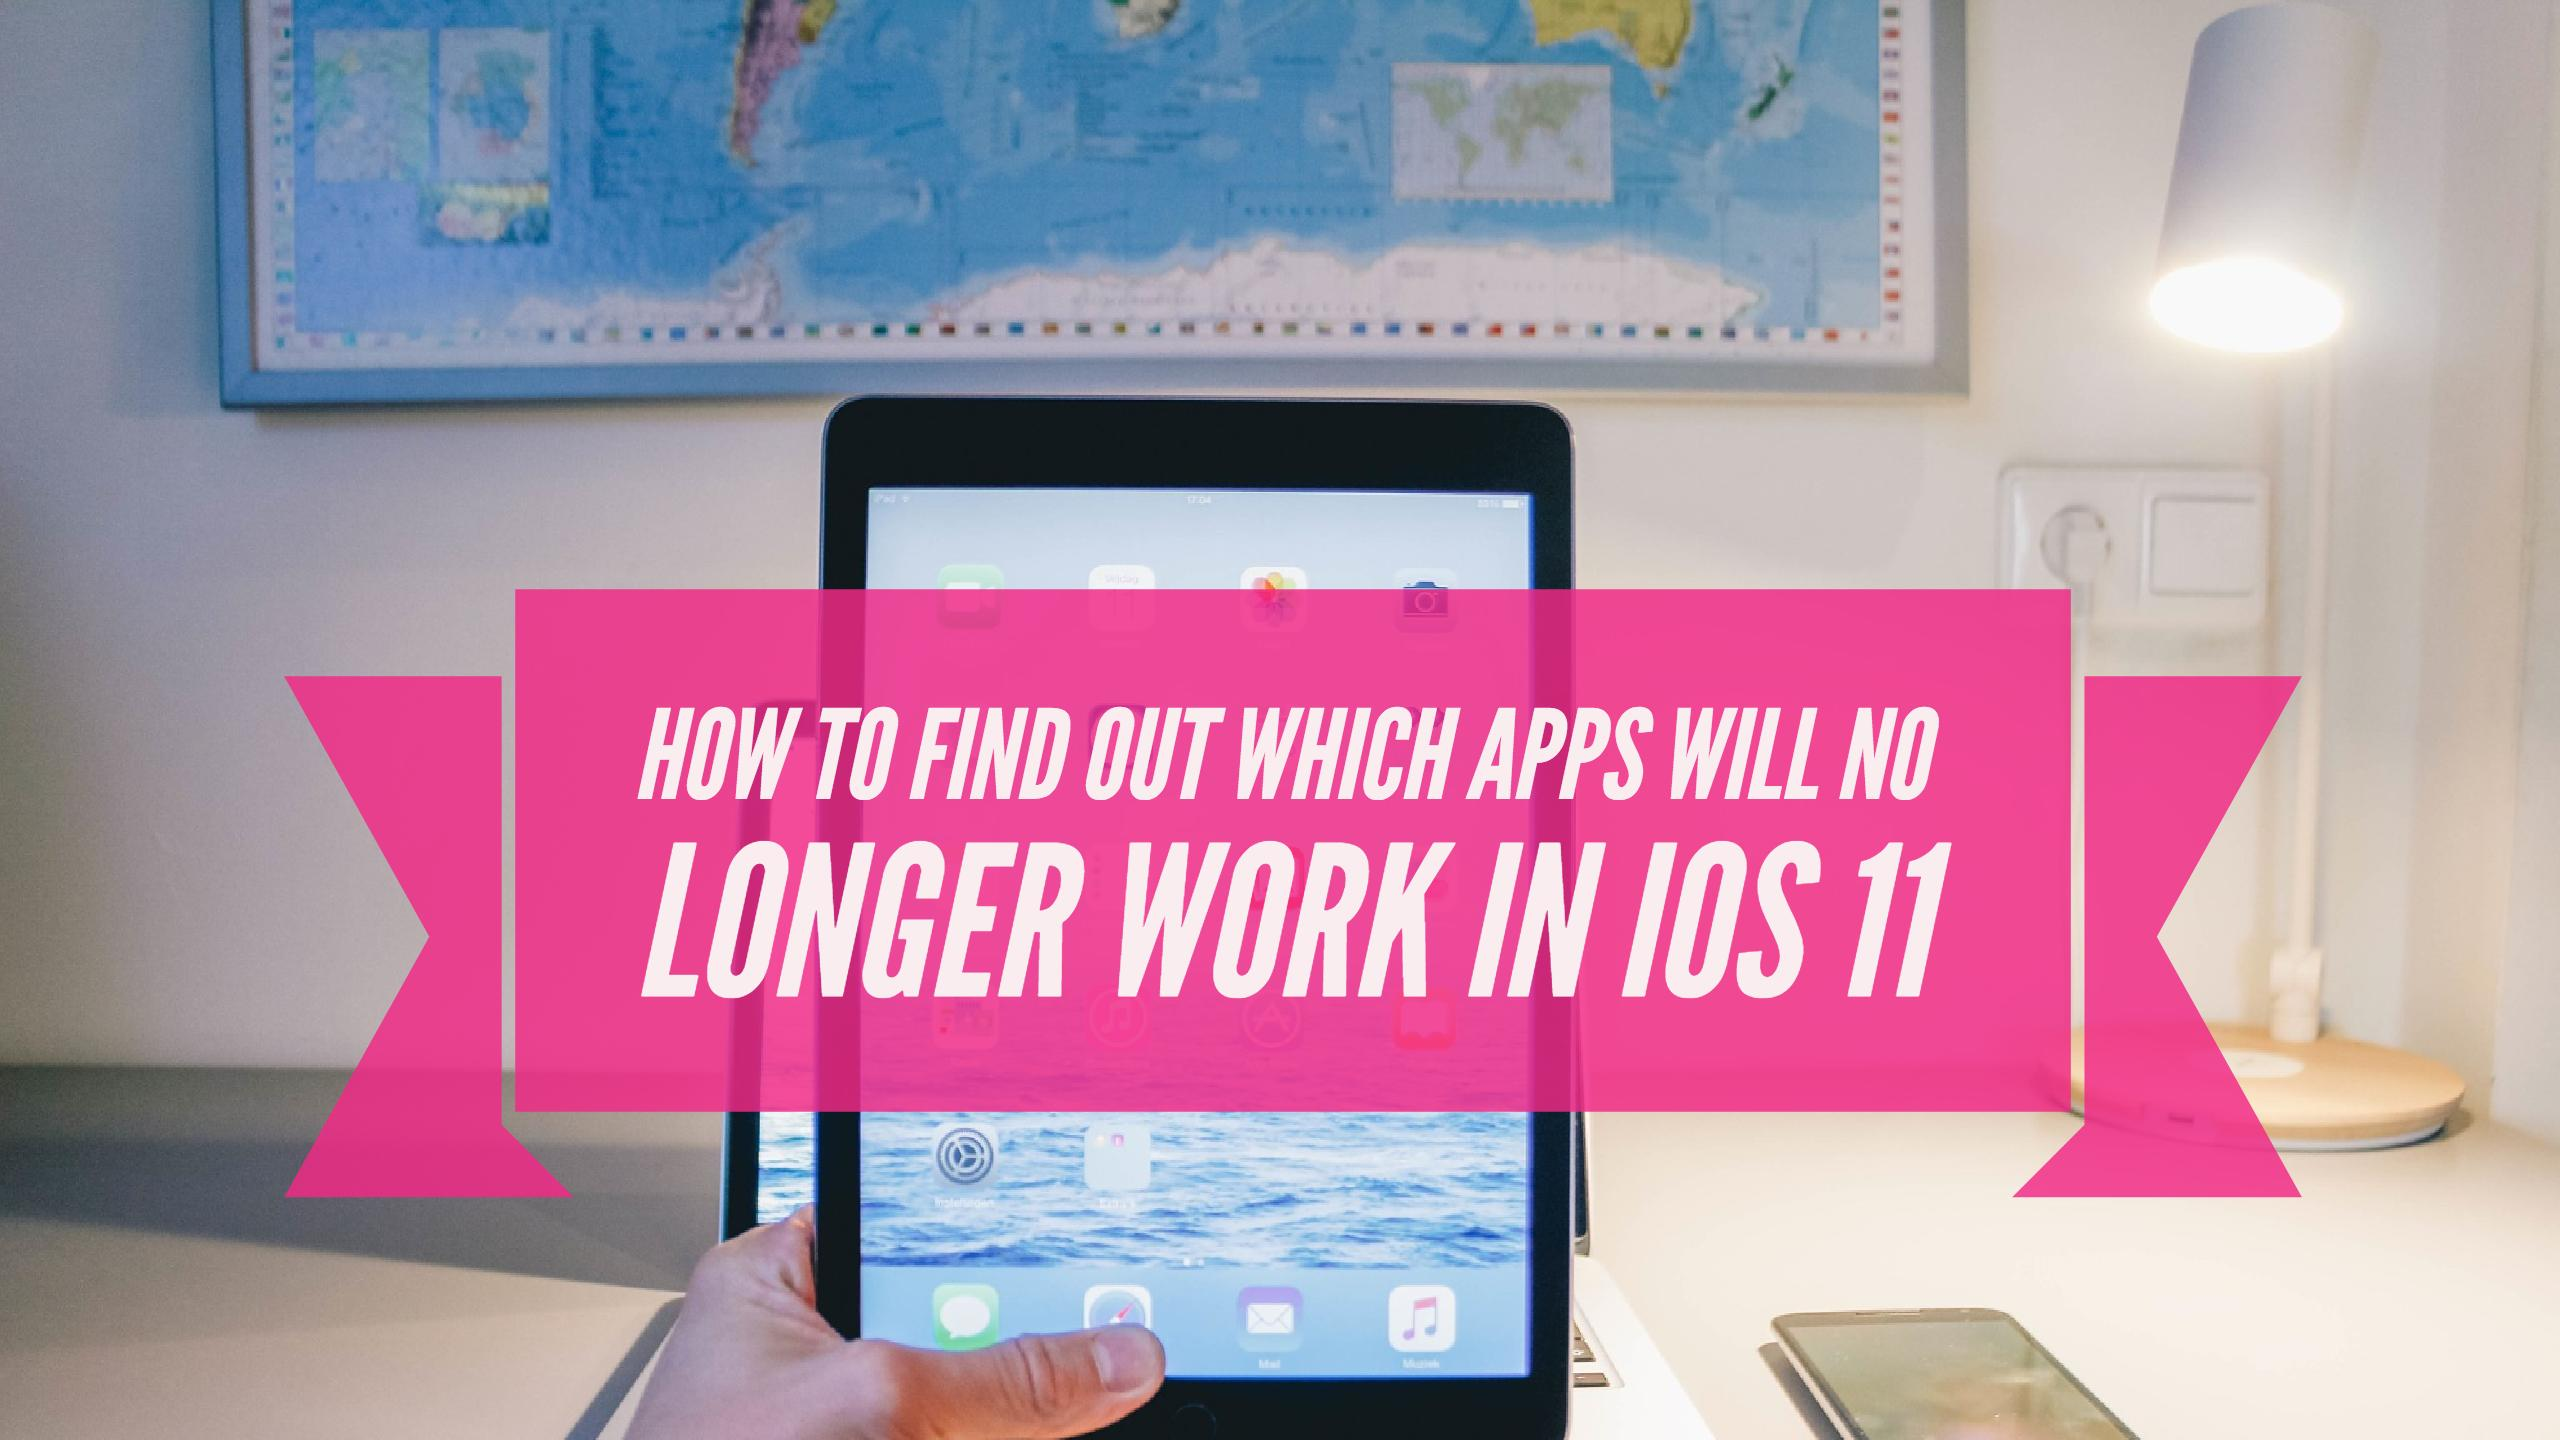 How to find out which apps will no longer work in iOS 11